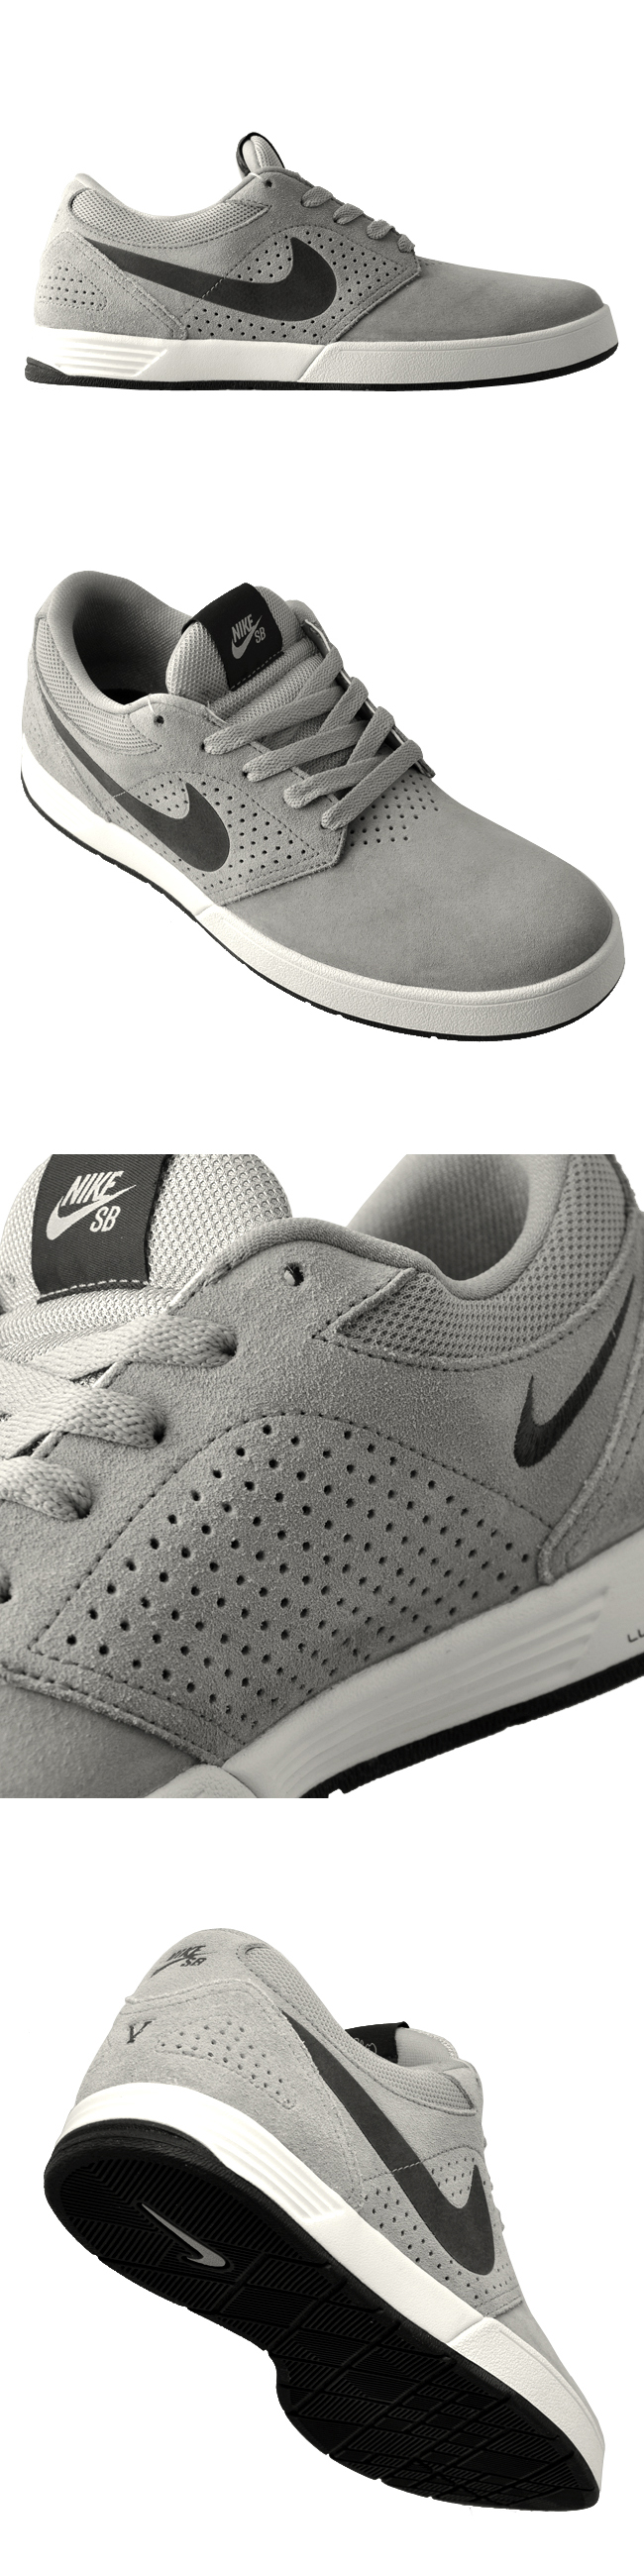 Available now through Kasina, these will be landing at US Nike SB spots  next month.